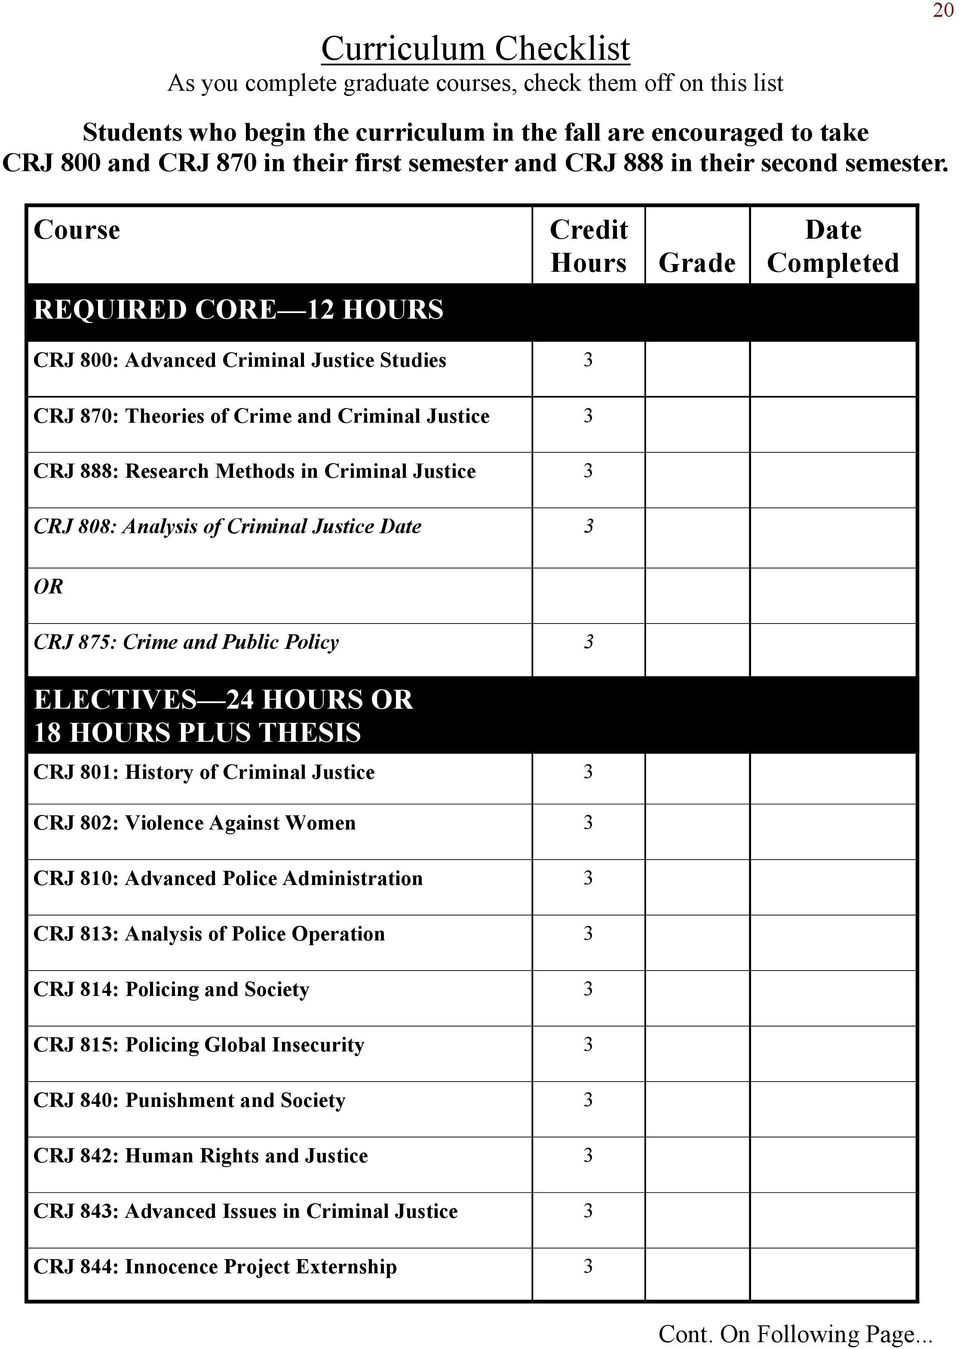 20 Course Credit Hours Grade Date Completed REQUIRED CORE 12 HOURS CRJ 800: Advanced Criminal Justice Studies 3 CRJ 870: Theories of Crime and Criminal Justice 3 CRJ 888: Research Methods in Criminal